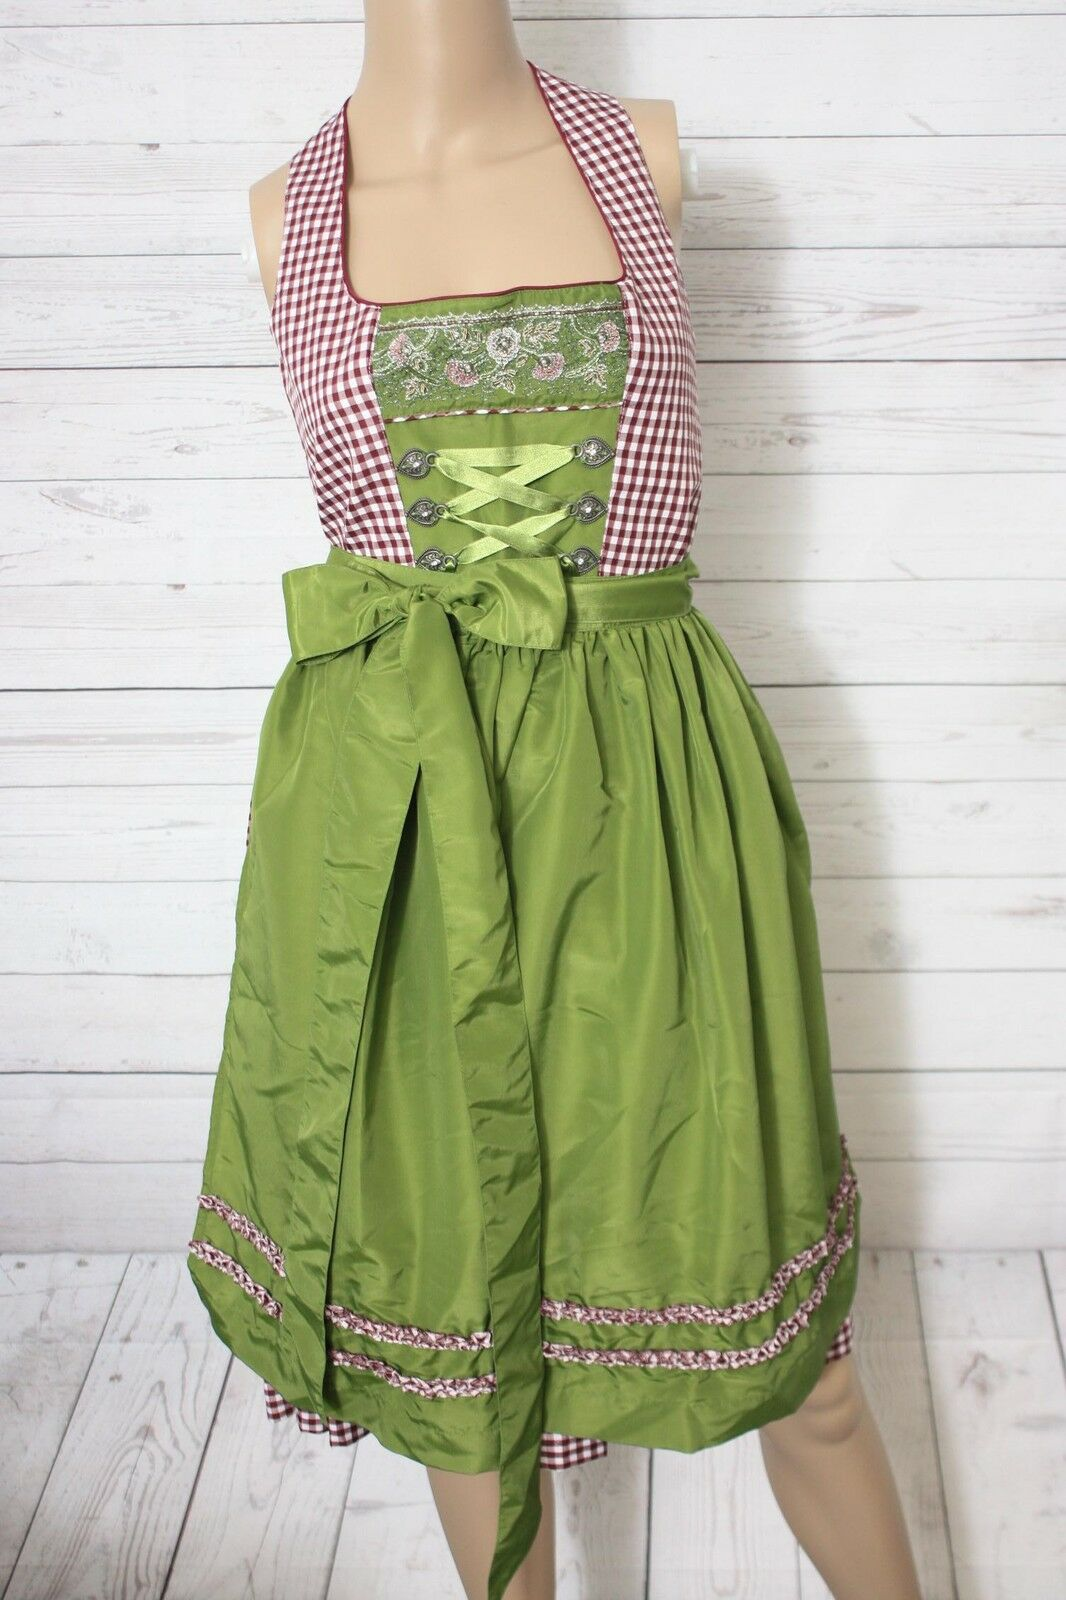 Ludwig&Therese DaMänner Dirndl, Beatrice beere, Gr. 40